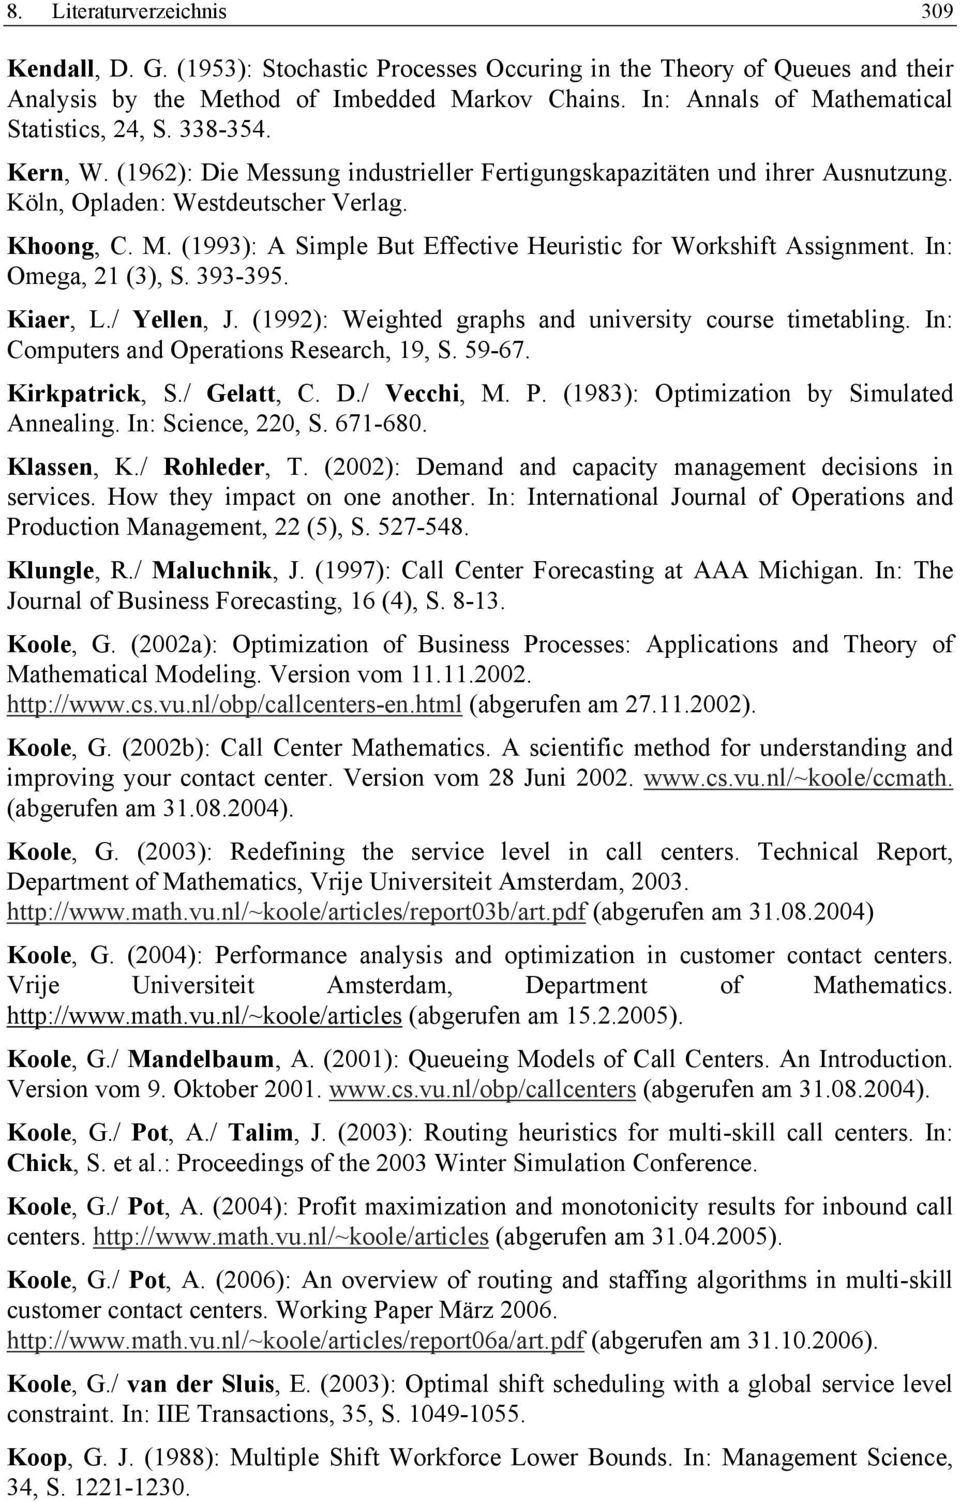 In: Omega, 21 (3), S. 393-395. Kiaer, L./ Yellen, J. (1992): Weighted graphs and university course timetabling. In: Computers and Operations Research, 19, S. 59-67. Kirkpatrick, S./ Gelatt, C. D.